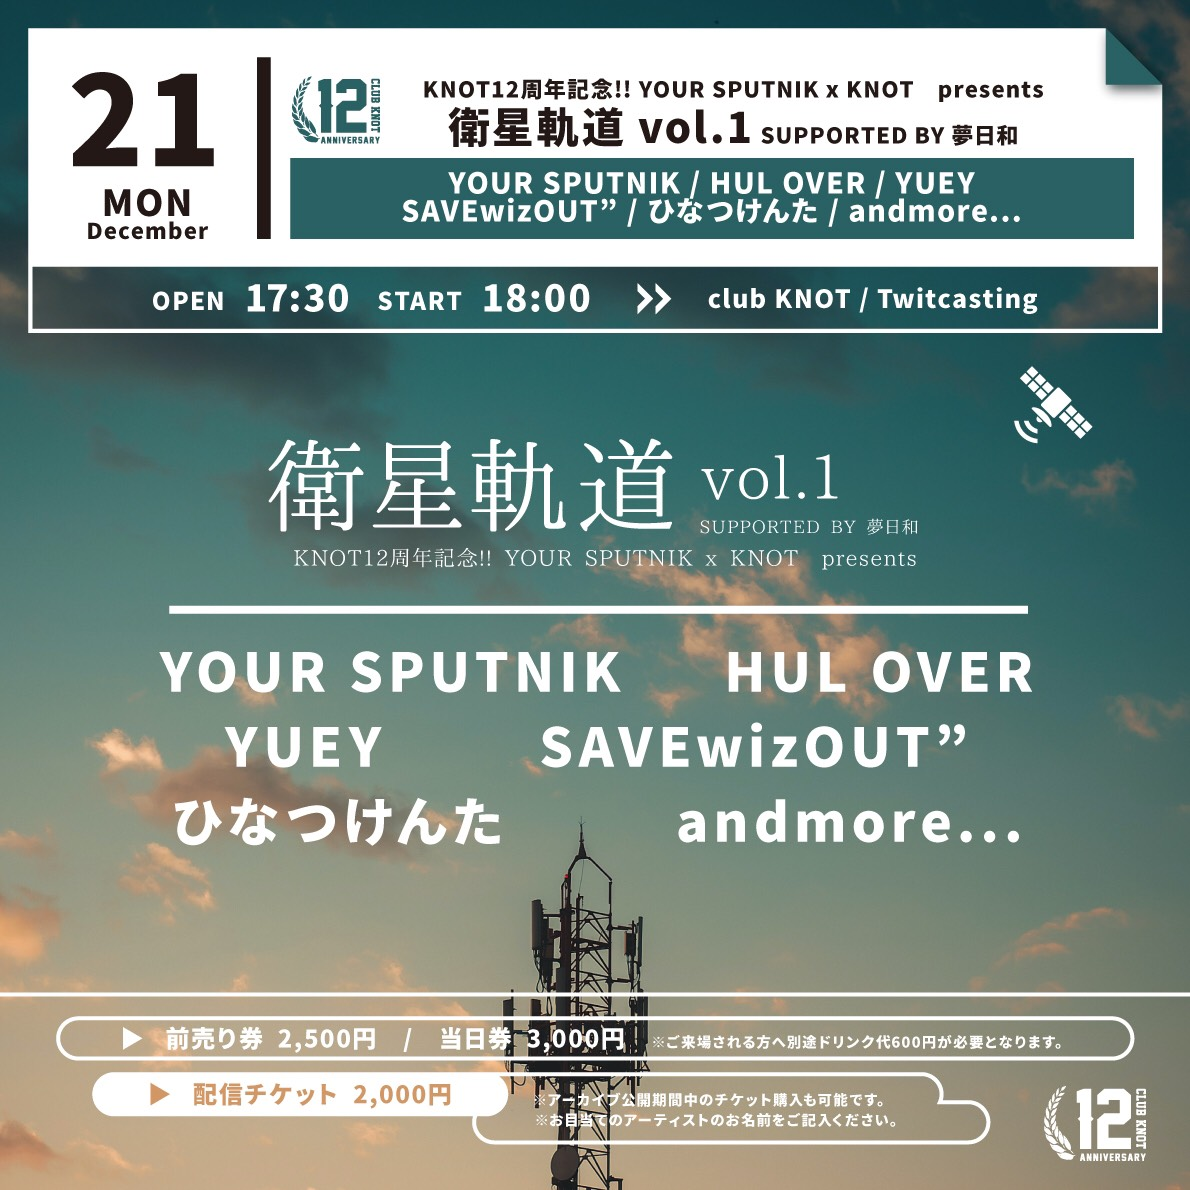 KNOT12周年記念!!YOUR SPUTNIK x KNOT presents「衛星軌道 vol.1」